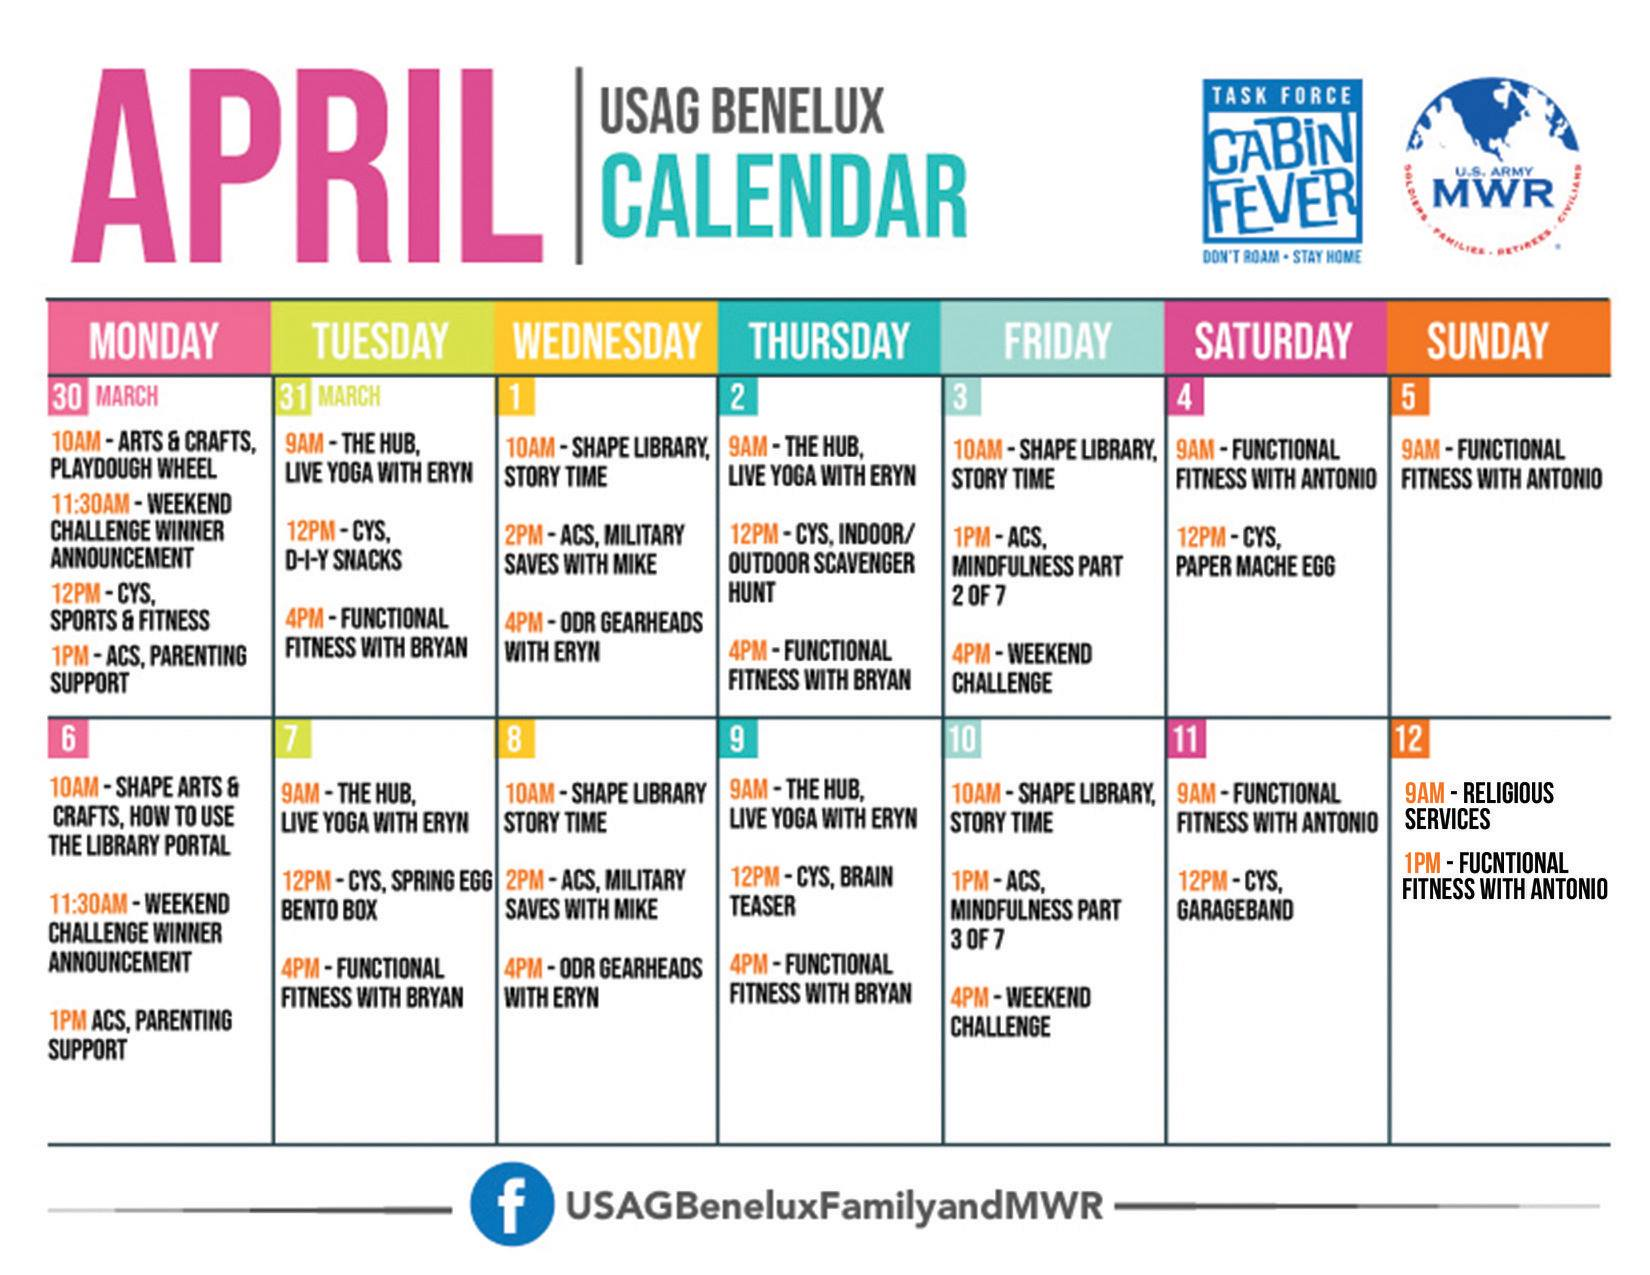 USAG Benelux Task Force Cabin Fever Activity Schedule